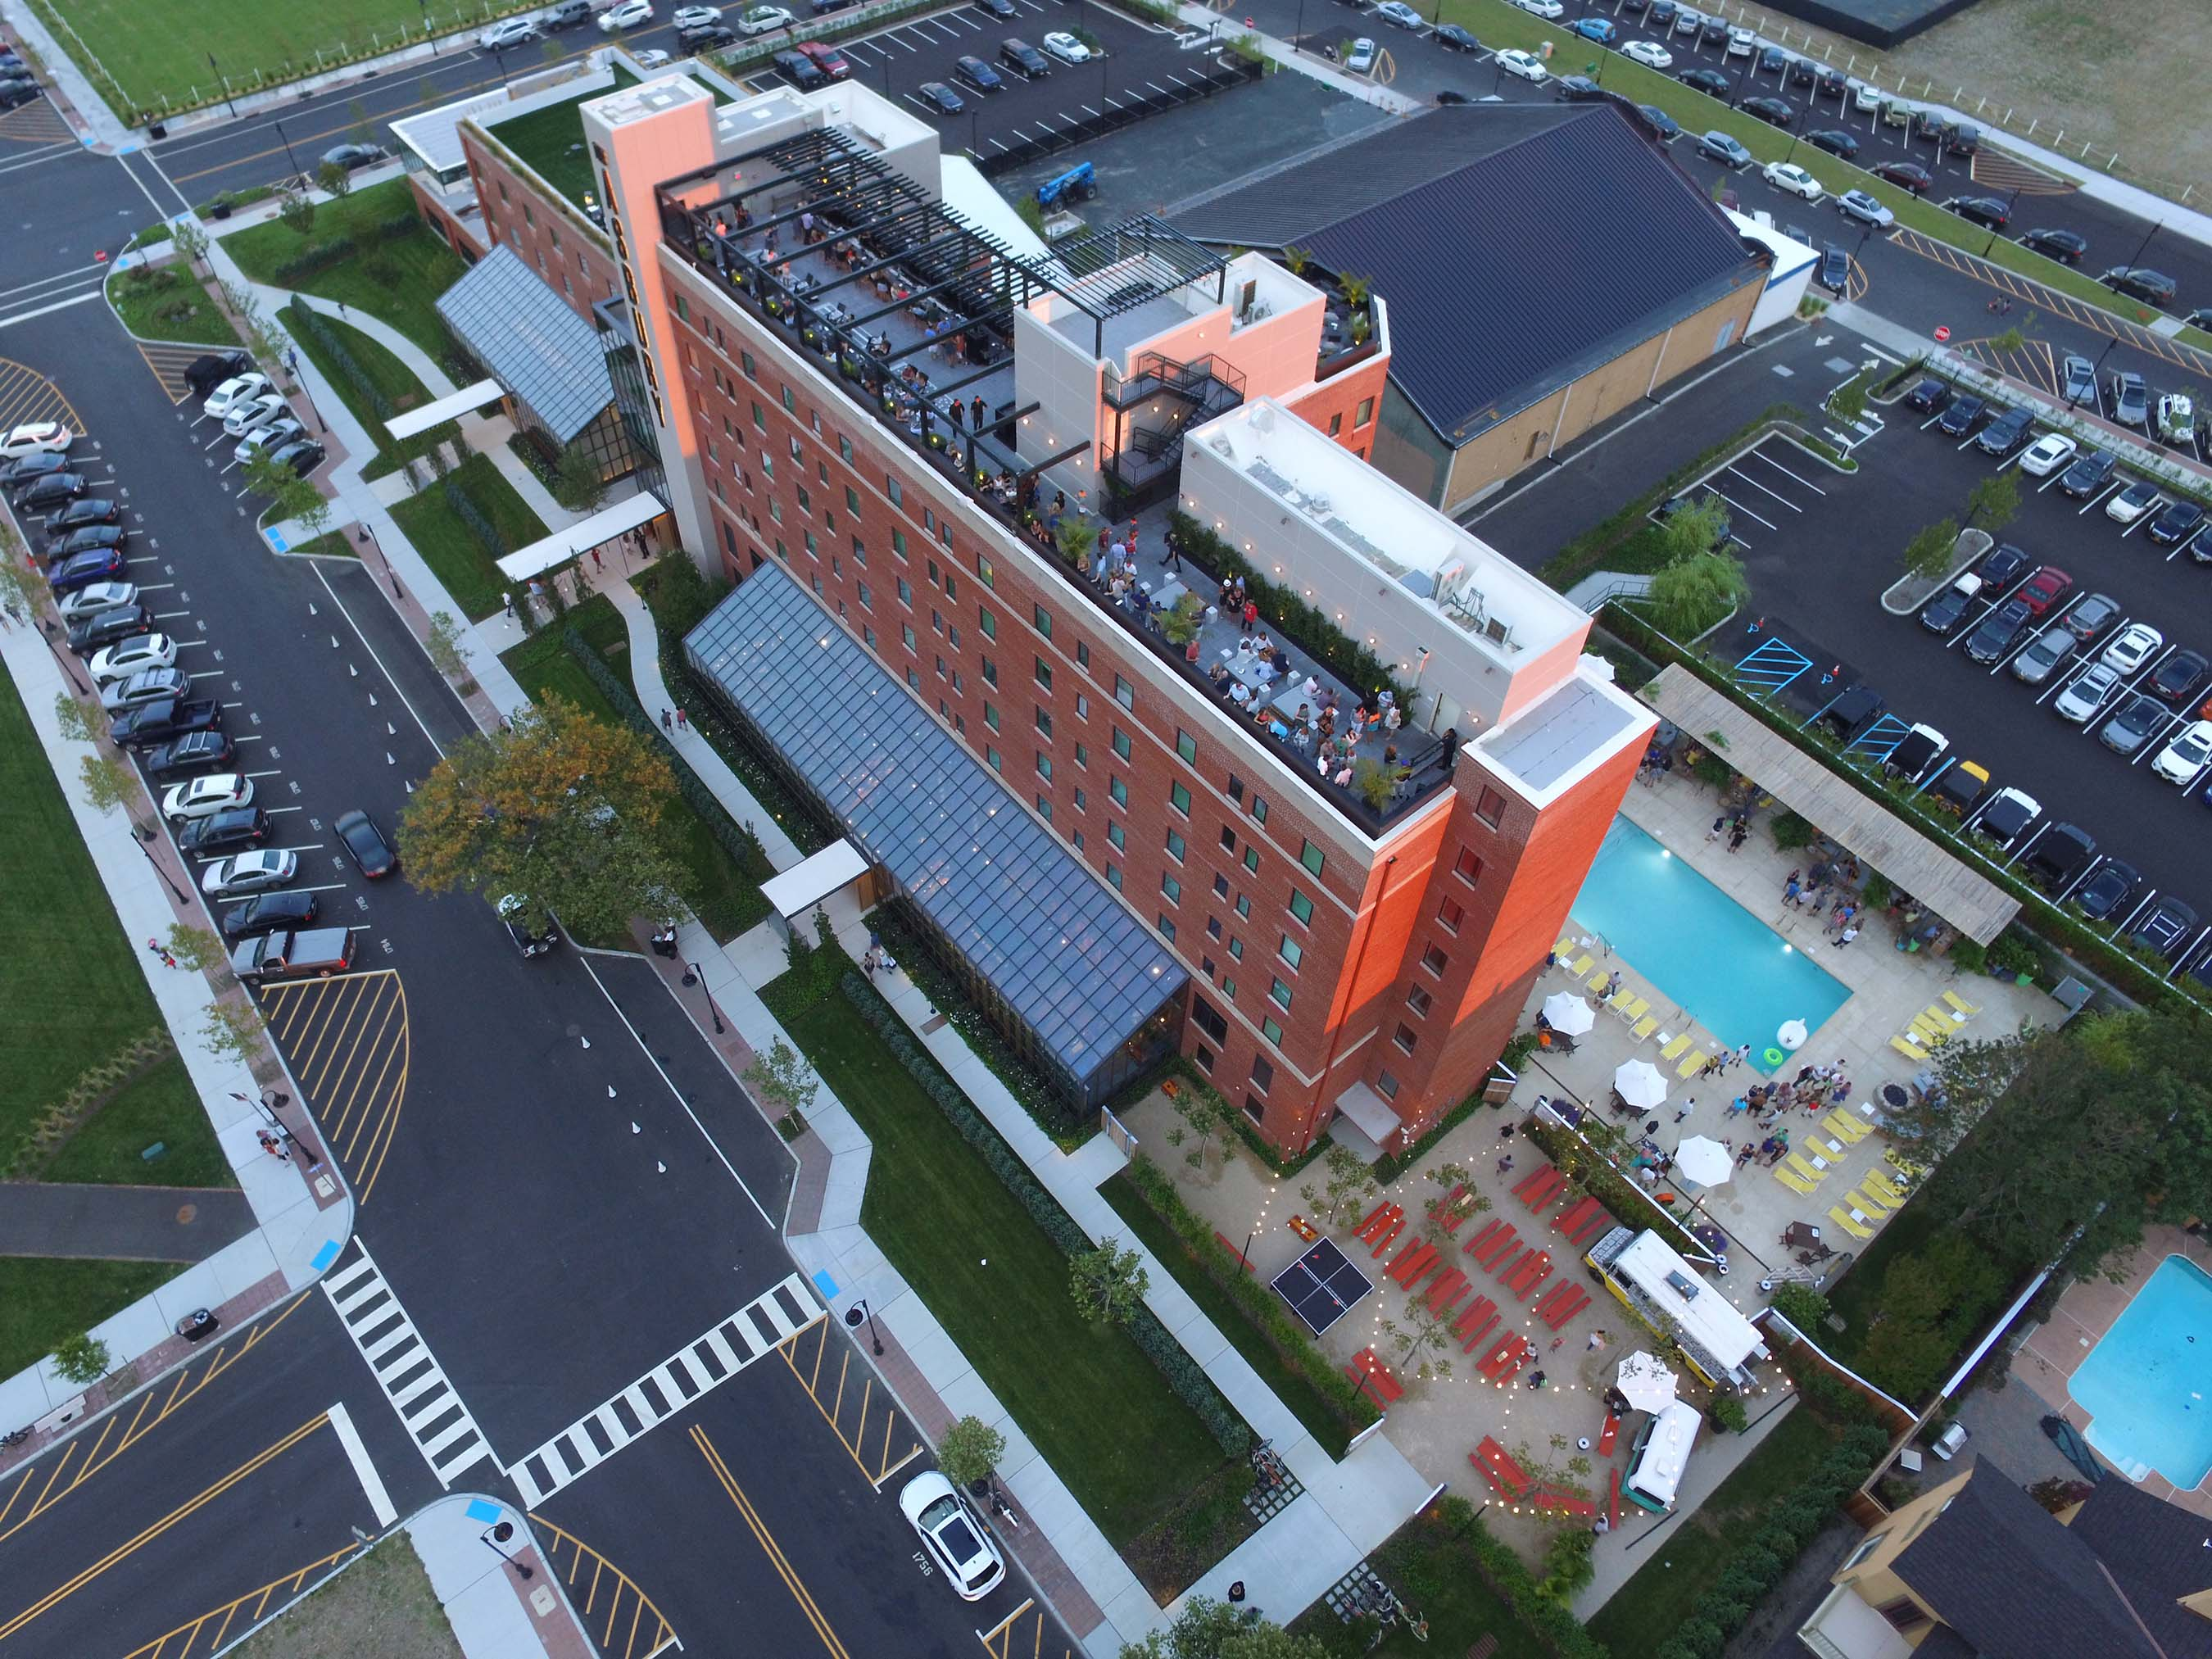 Aerial shot of the country's coolest new hotel, The Asbury